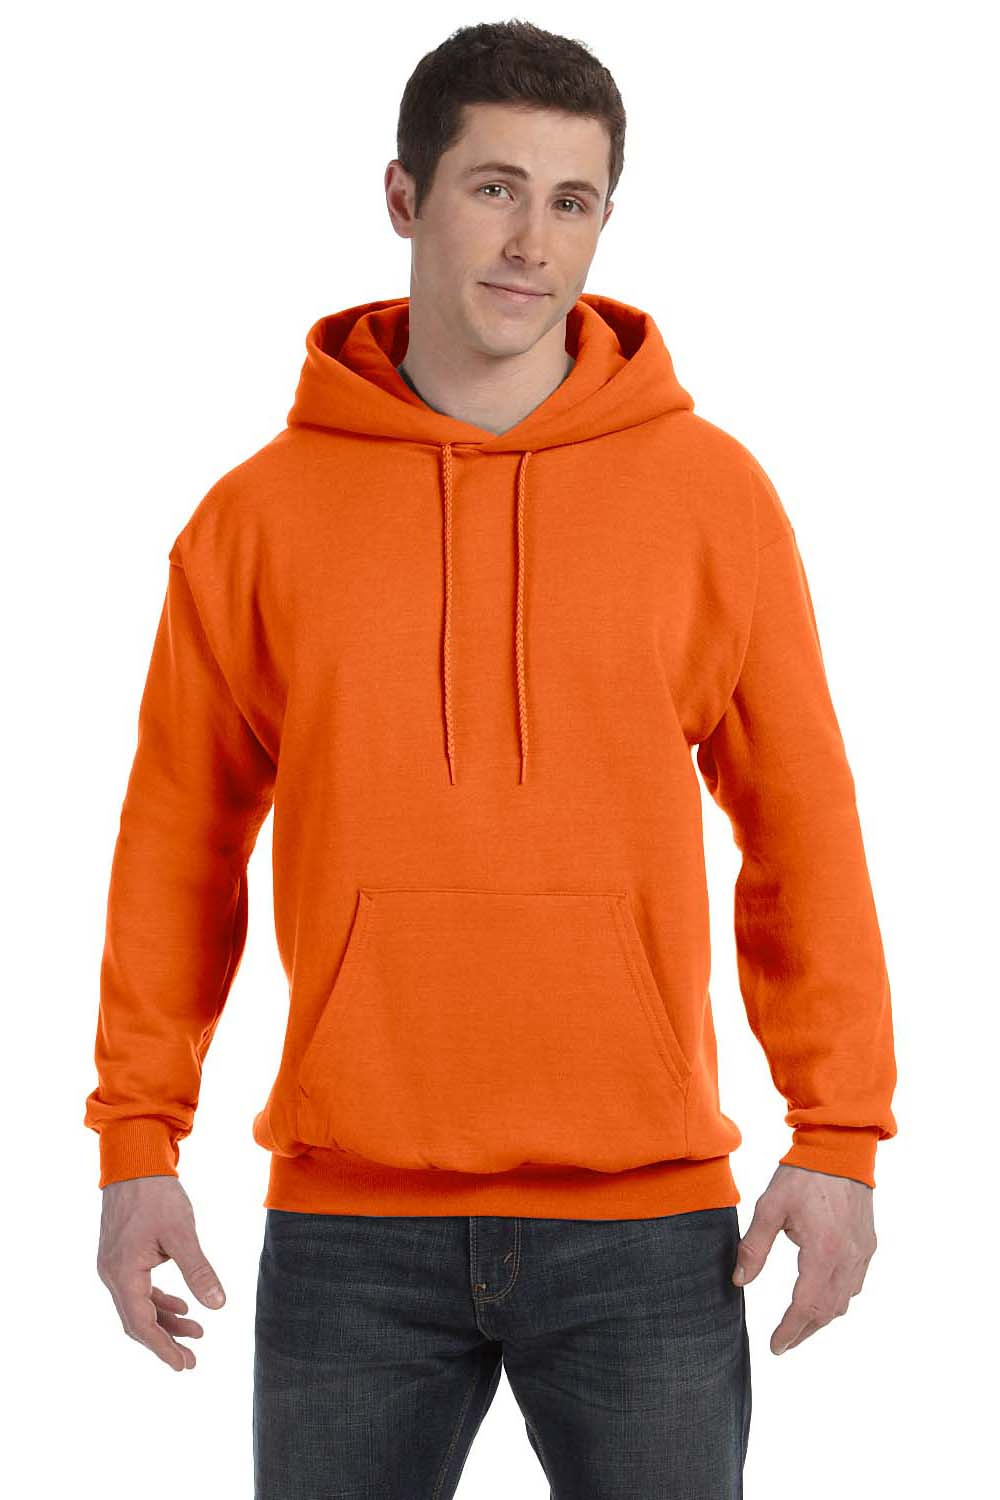 Hanes P170 Mens EcoSmart Print Pro XP Hooded Sweatshirt Hoodie Orange Front